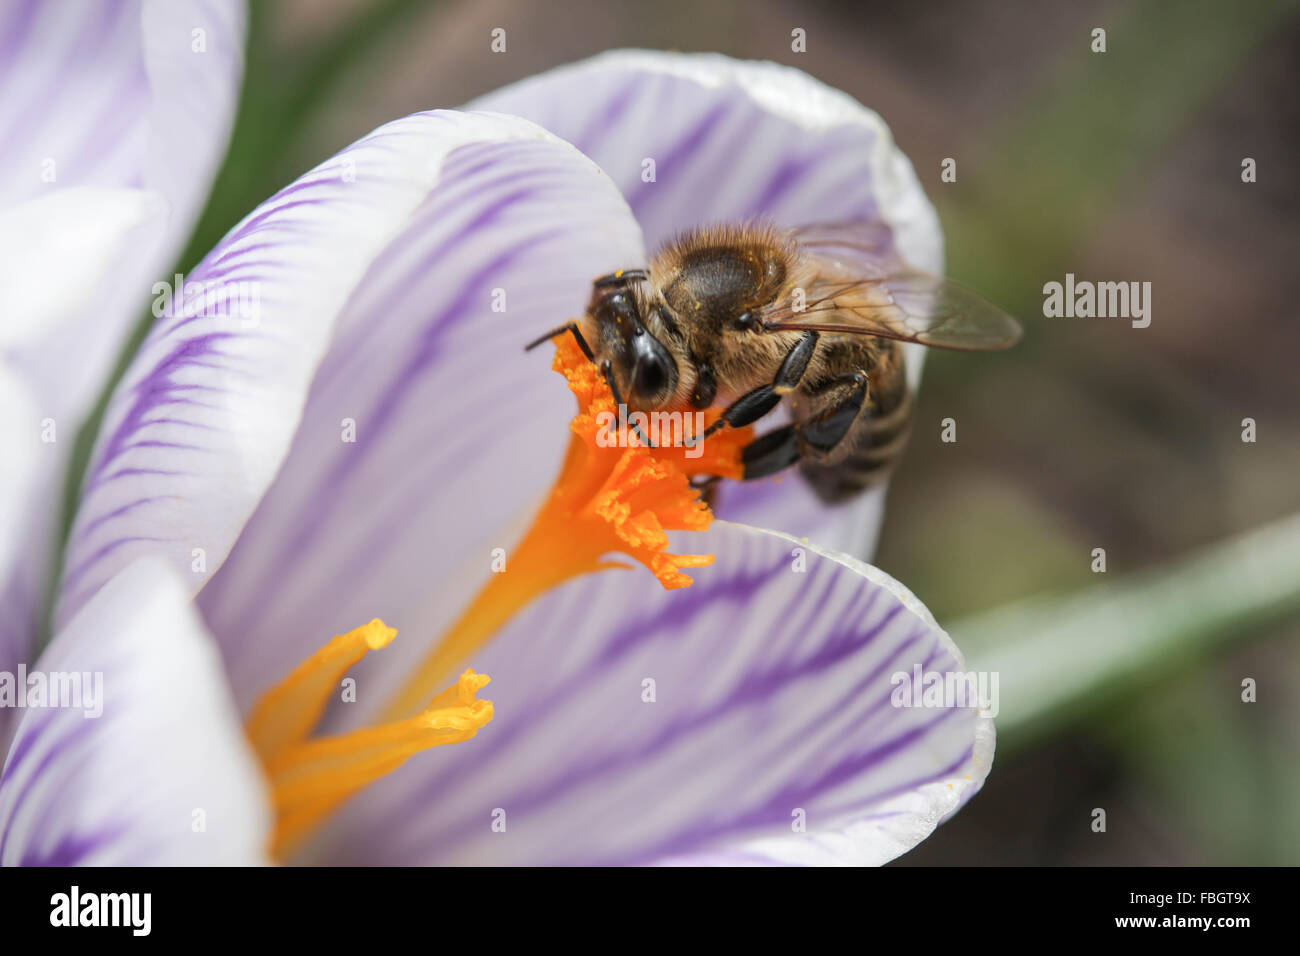 Macro - insects - bee on violet striped crocus - Stock Image